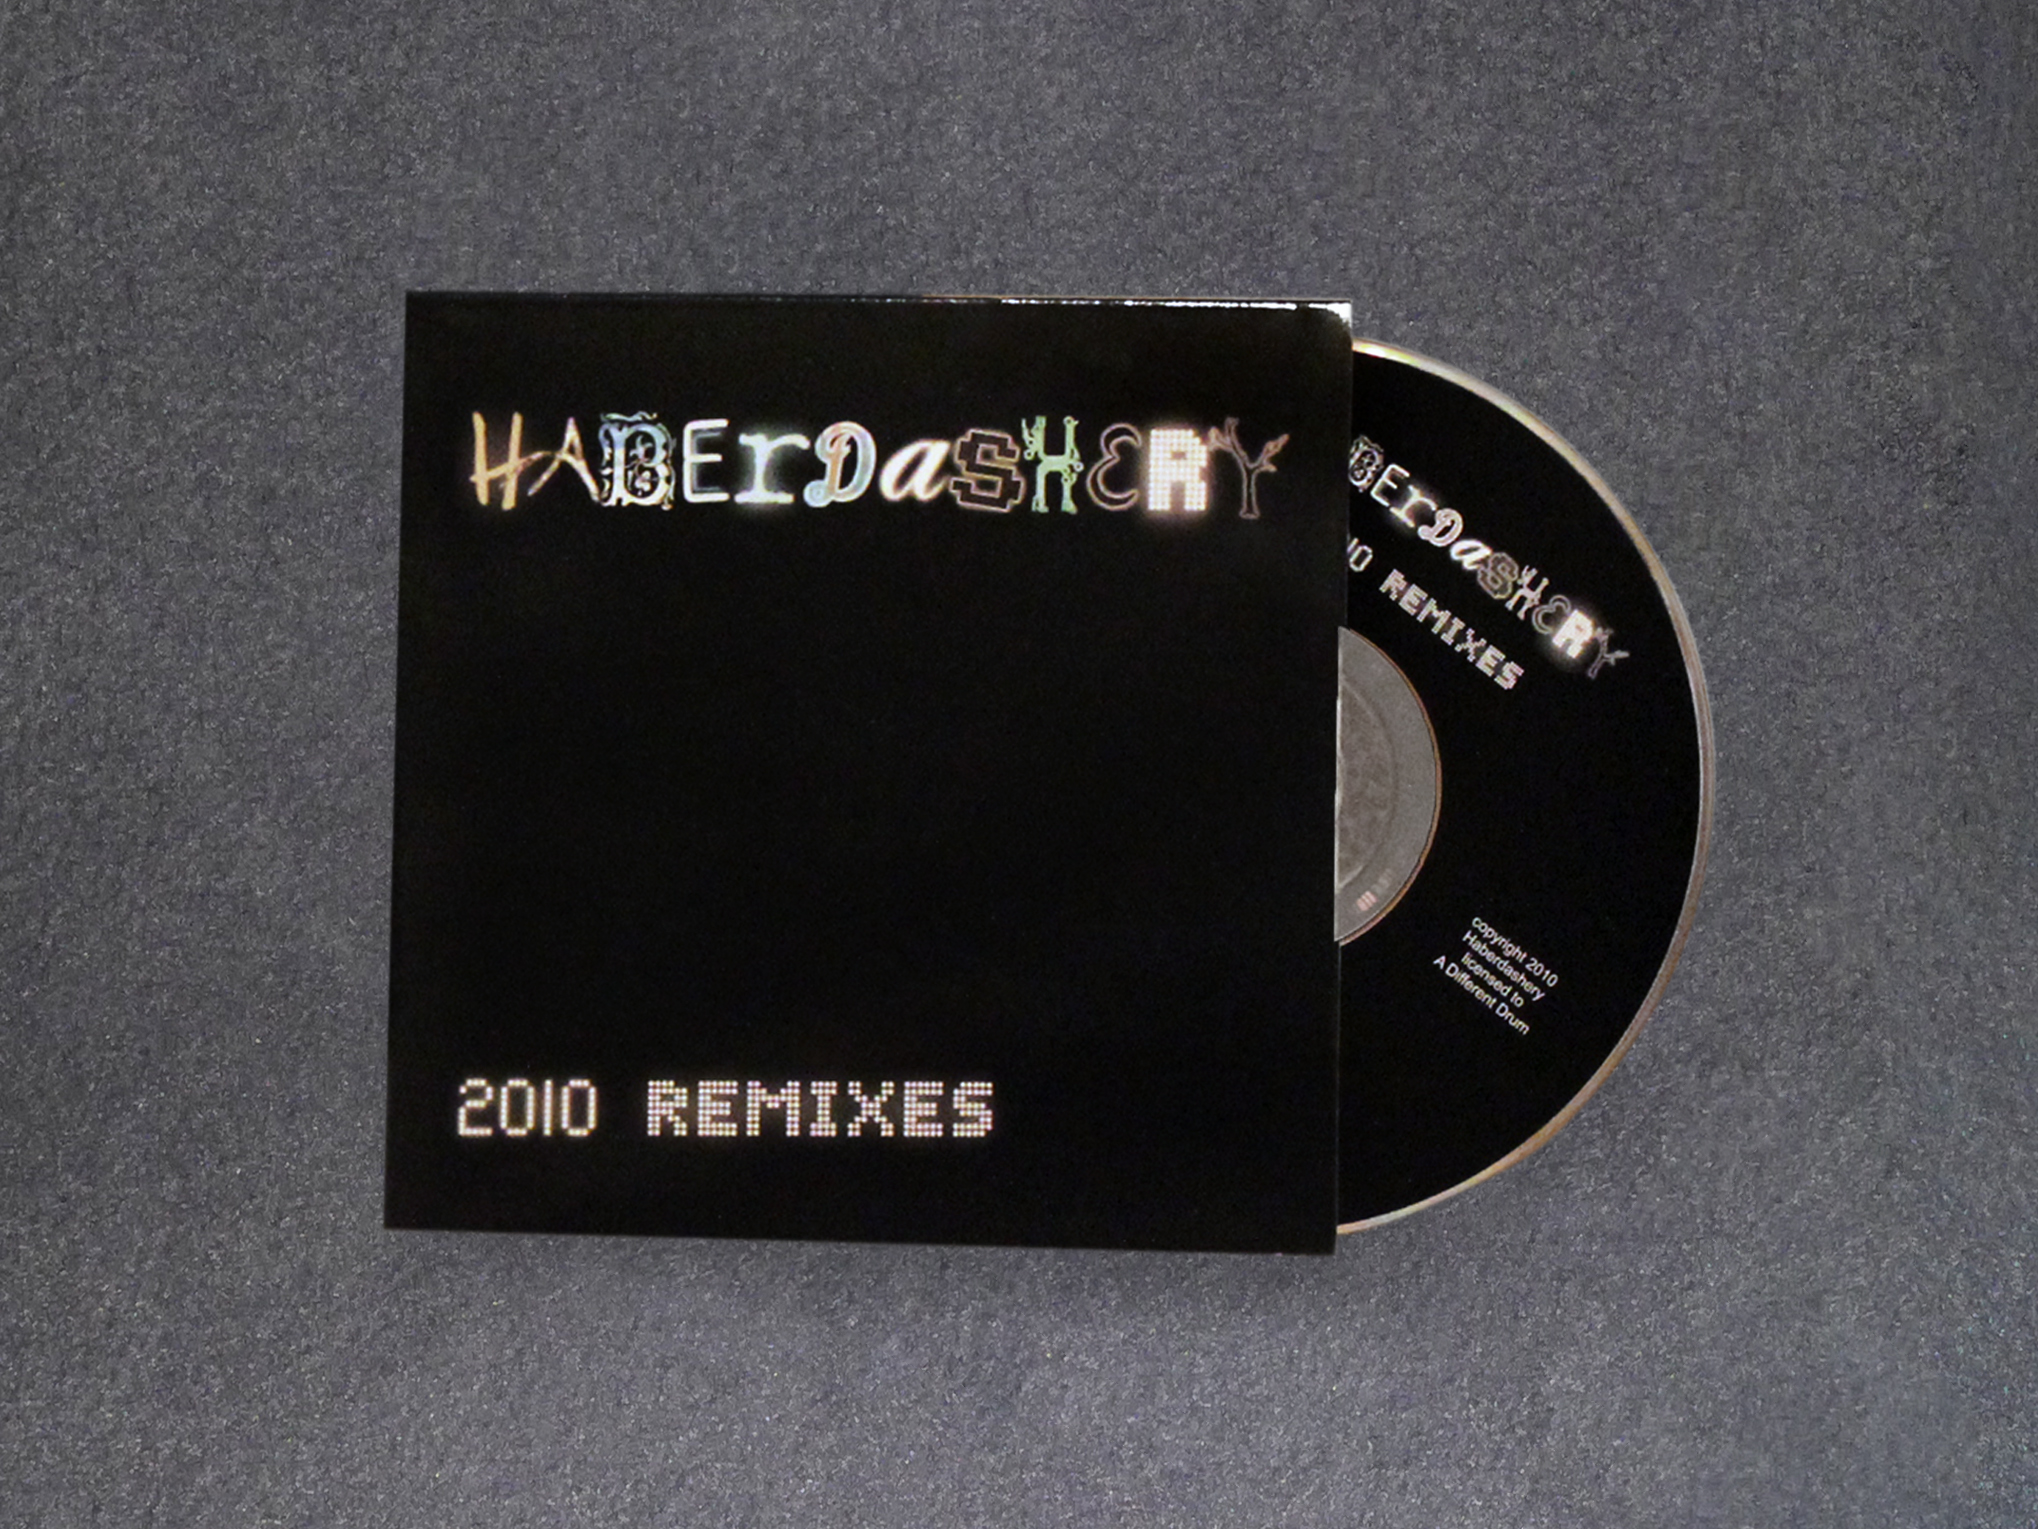 2010 Remixes CD.jpg